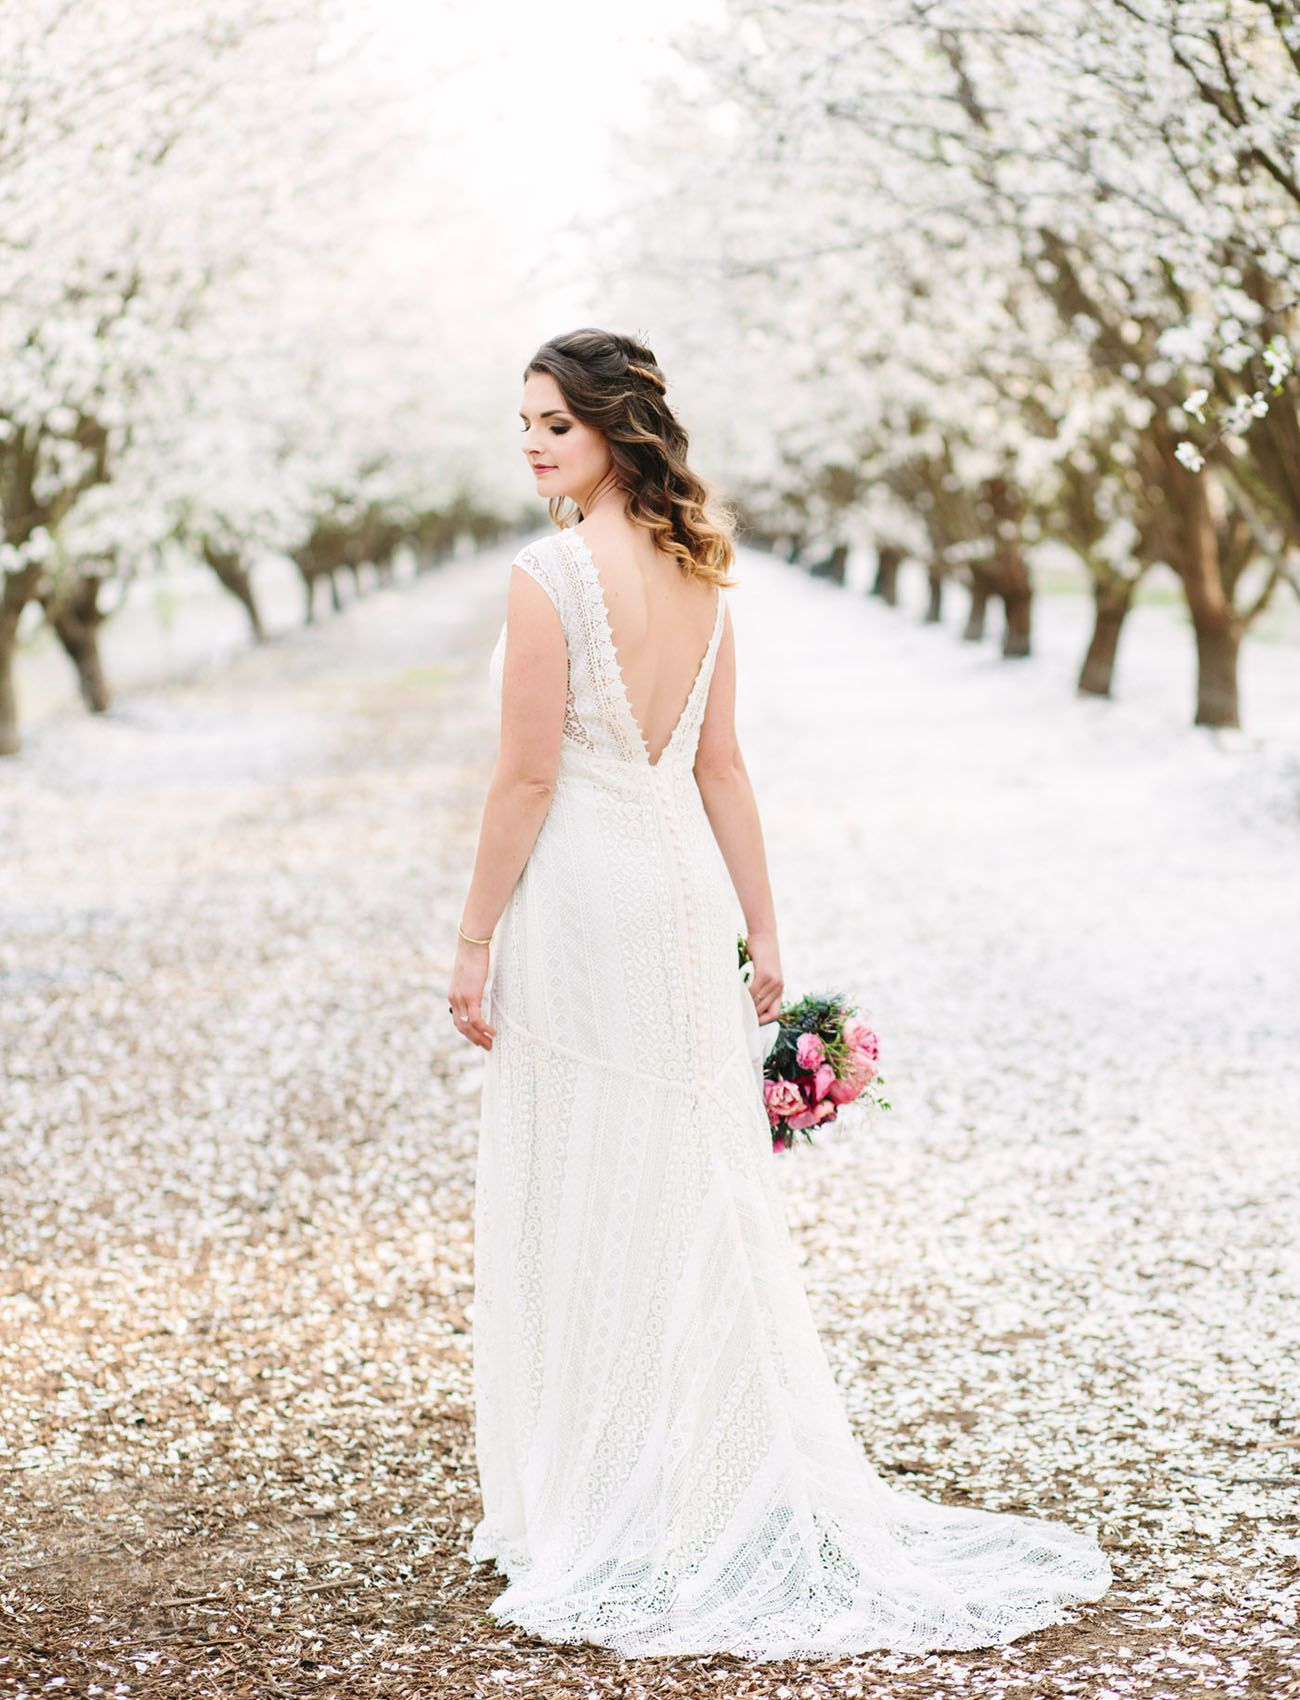 Modern bohemian wedding inspiration in the almond orchards wedding